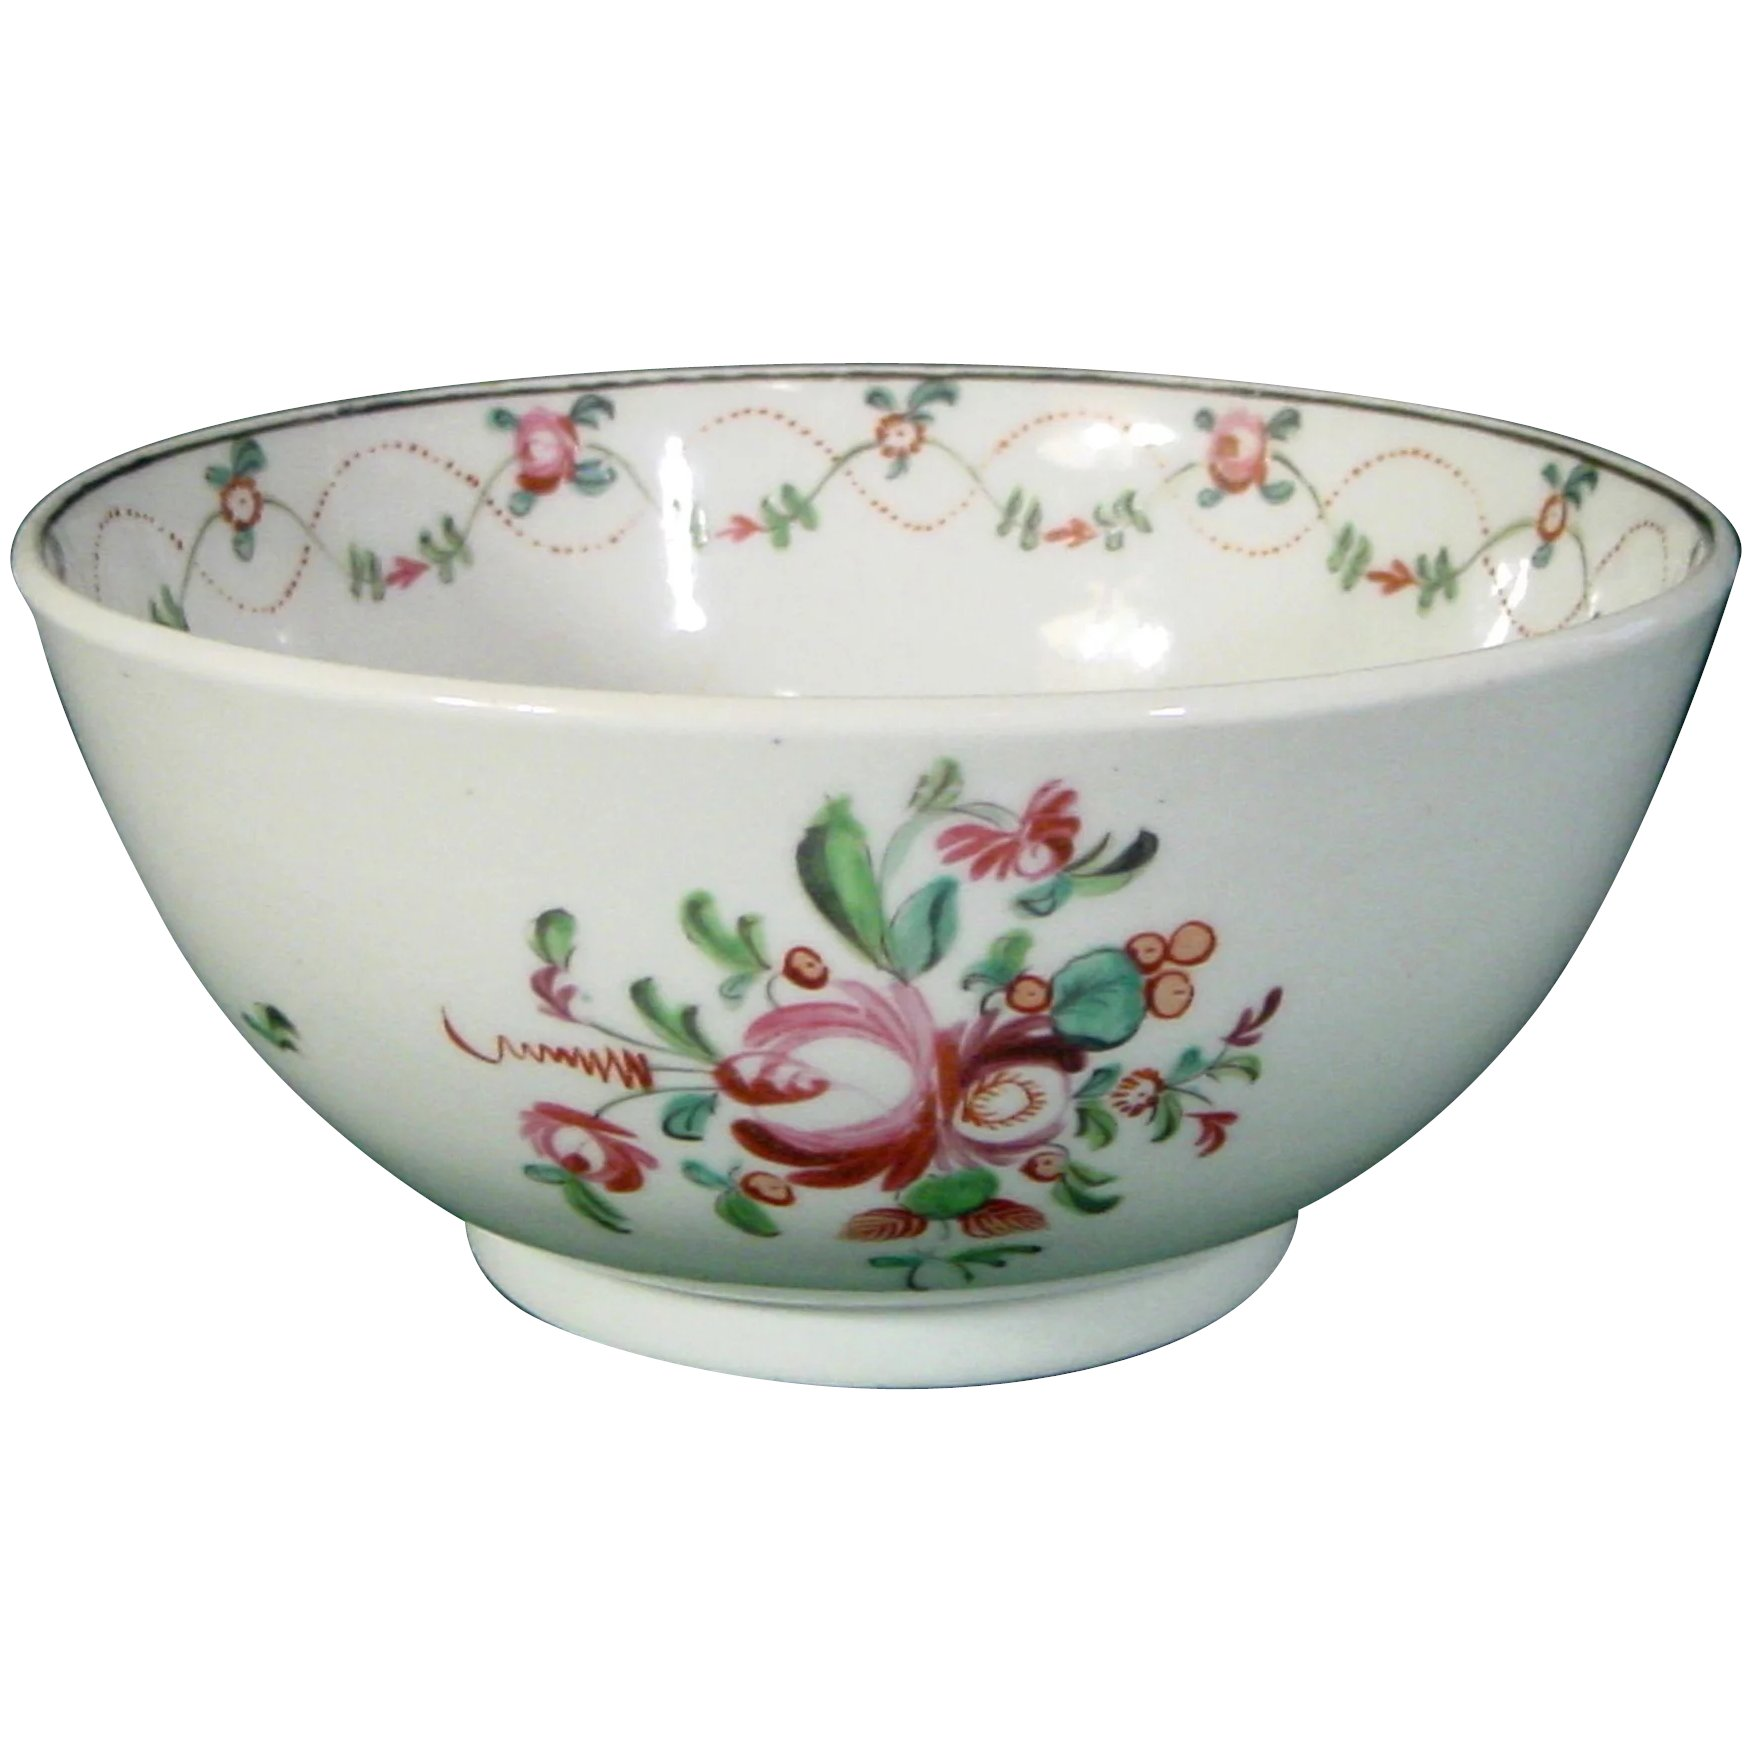 New Hall English Hard Paste Porcelain Bowl from a Tea Set in Pattern 7.